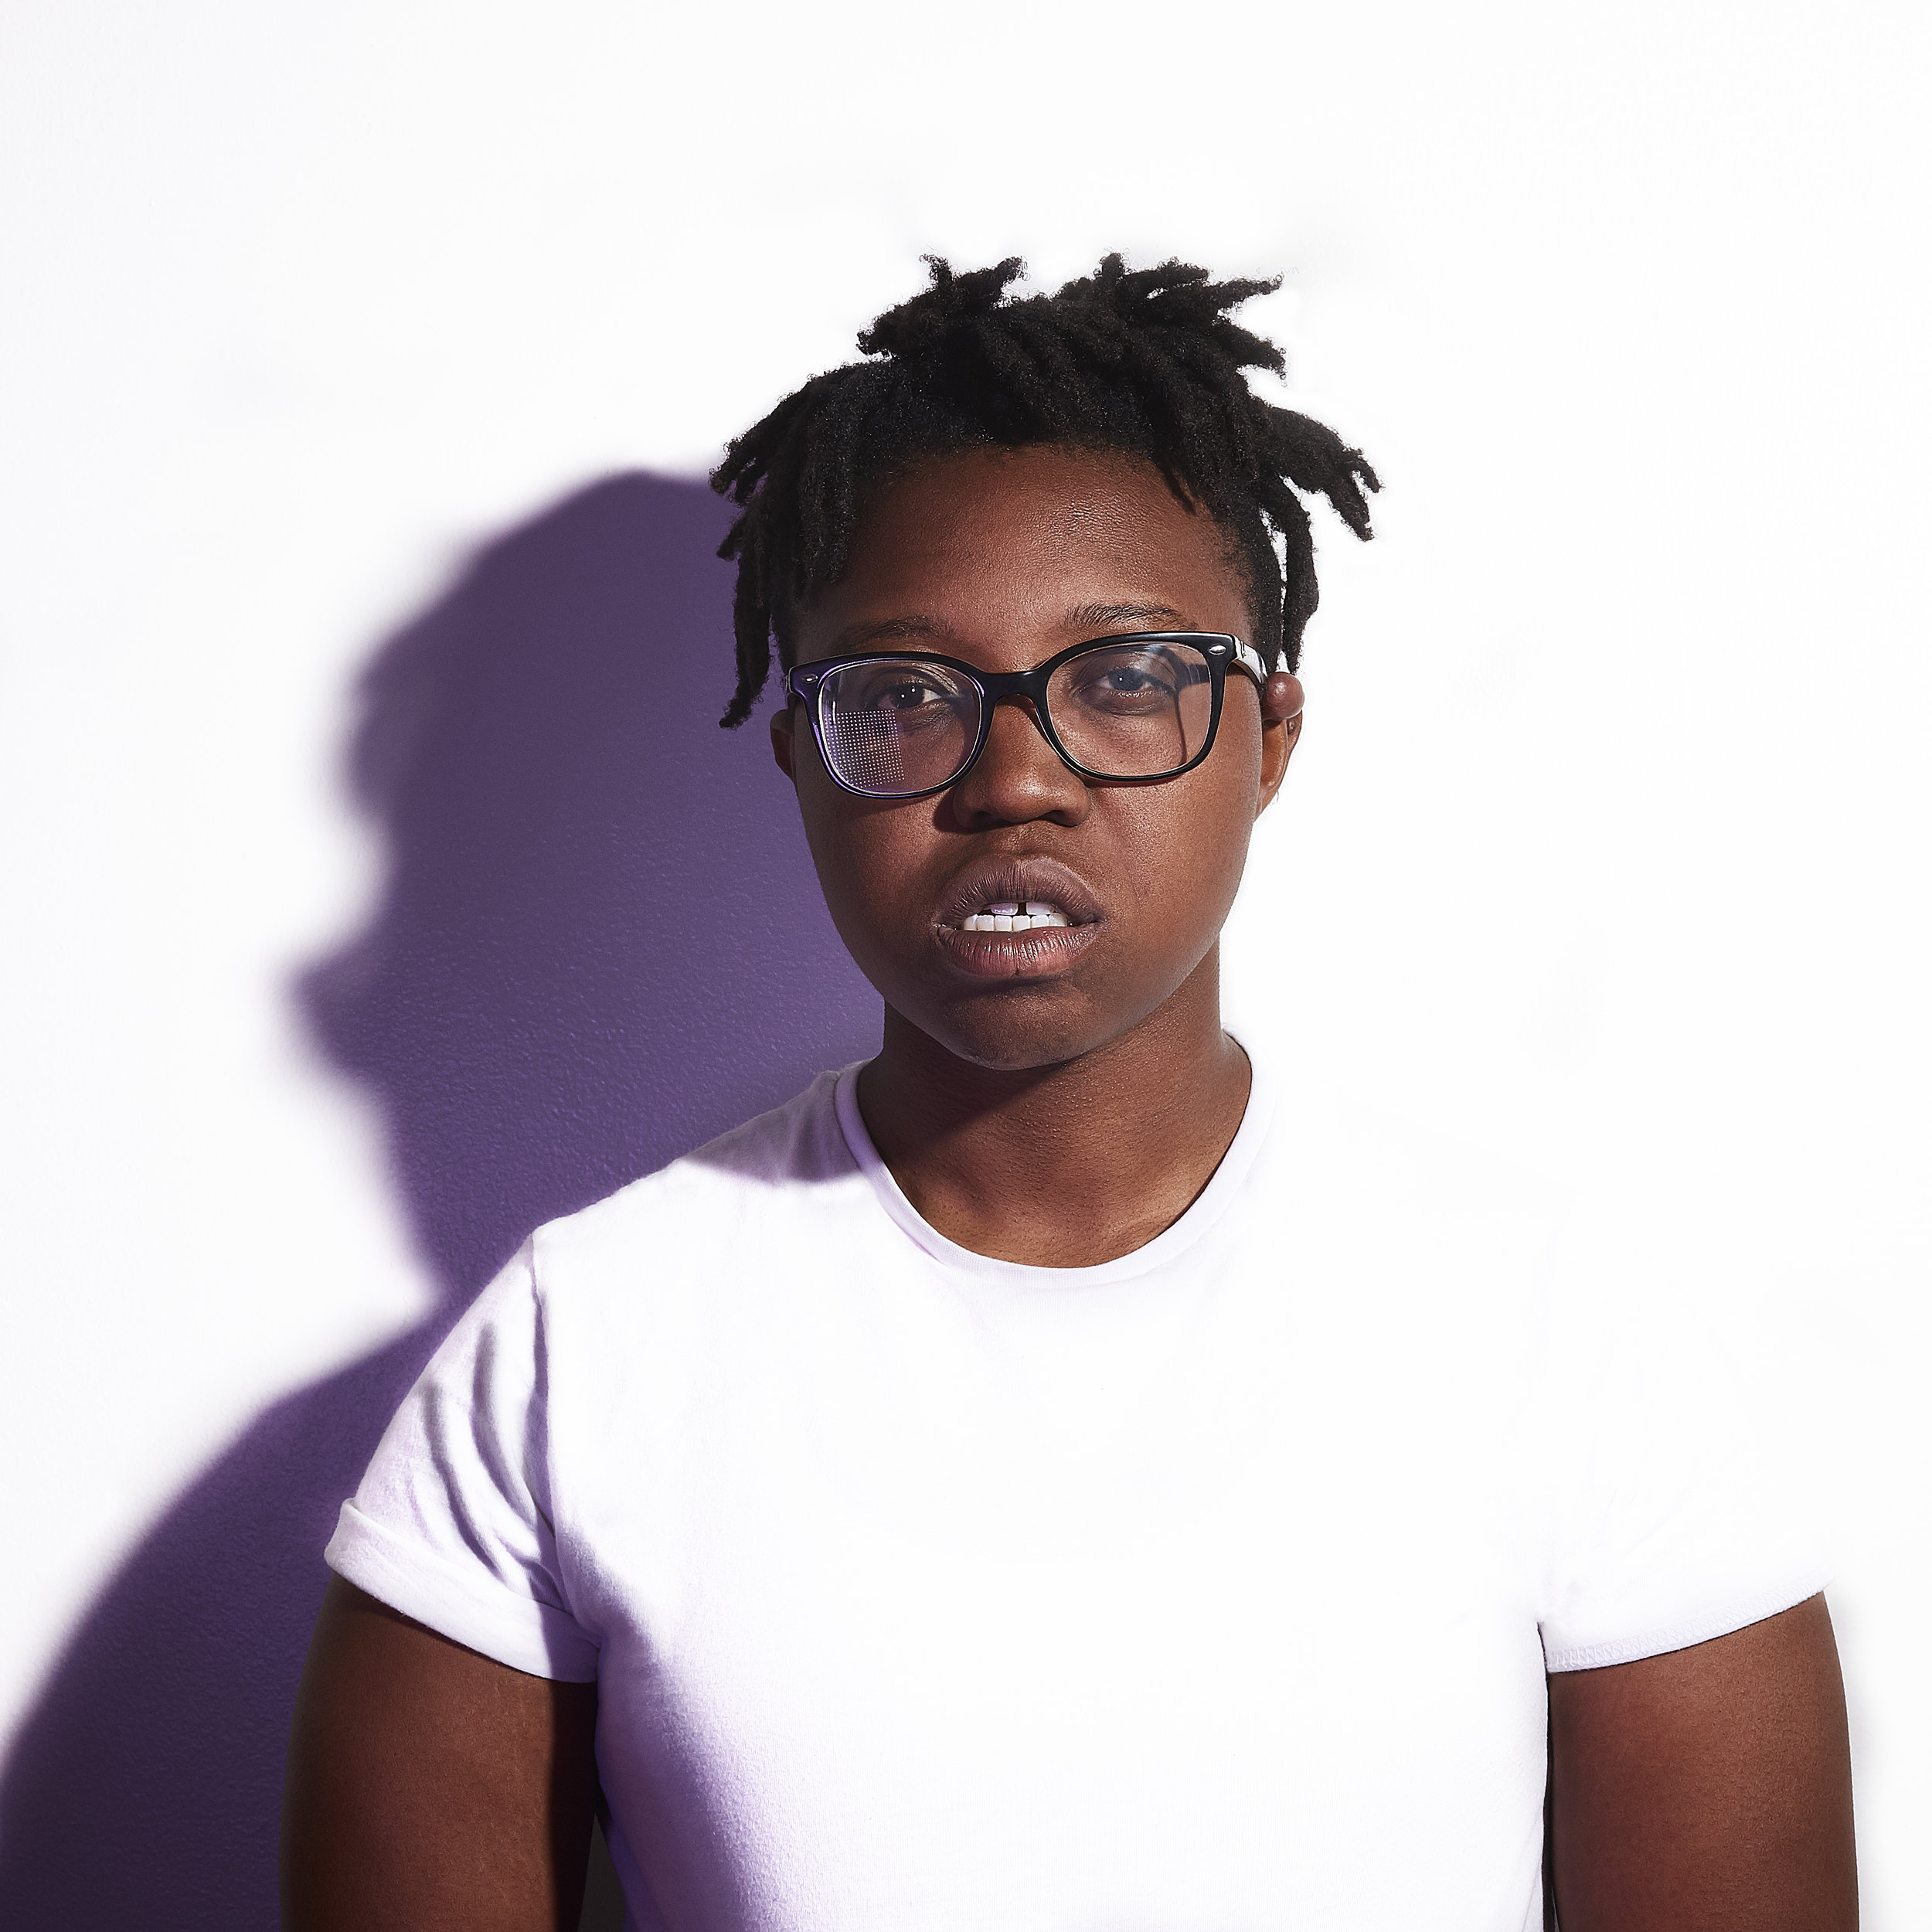 """NPR - NPRMUSIC SLINGSHOT: 20 ARTISTS TO WATCH IN 2019""""Anjimile's spiritual and melodic indie-pop sound is characterized by a smooth, highly expressive croon backed by guitar and synthesizer.""""Read More"""